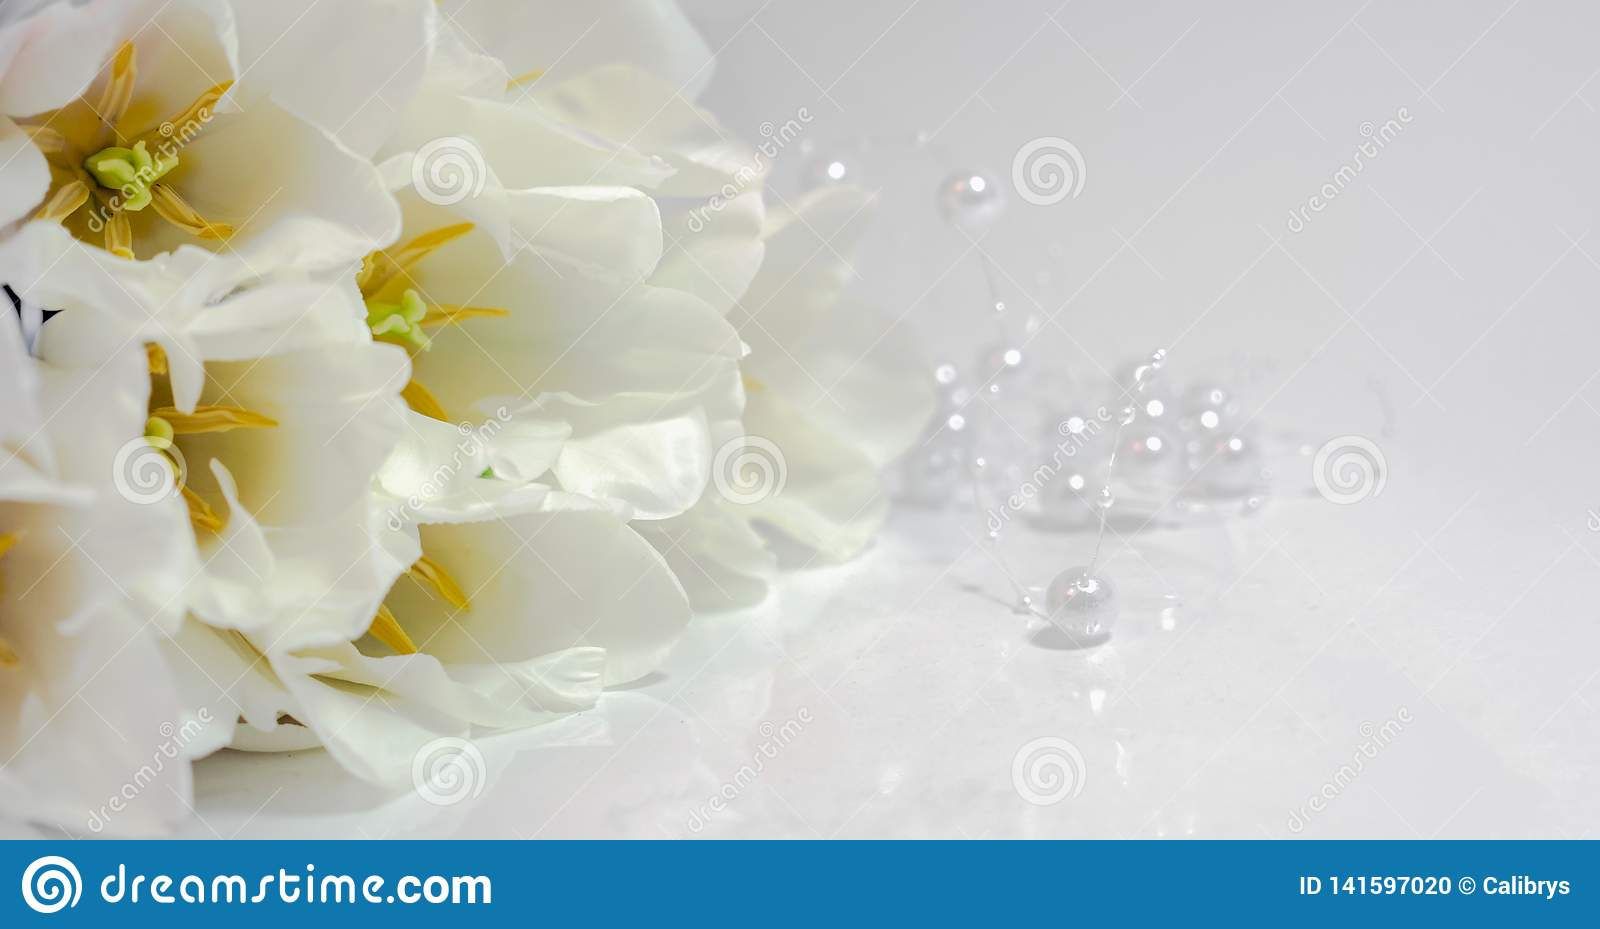 Bouquet of white tulips with white beads on a white table